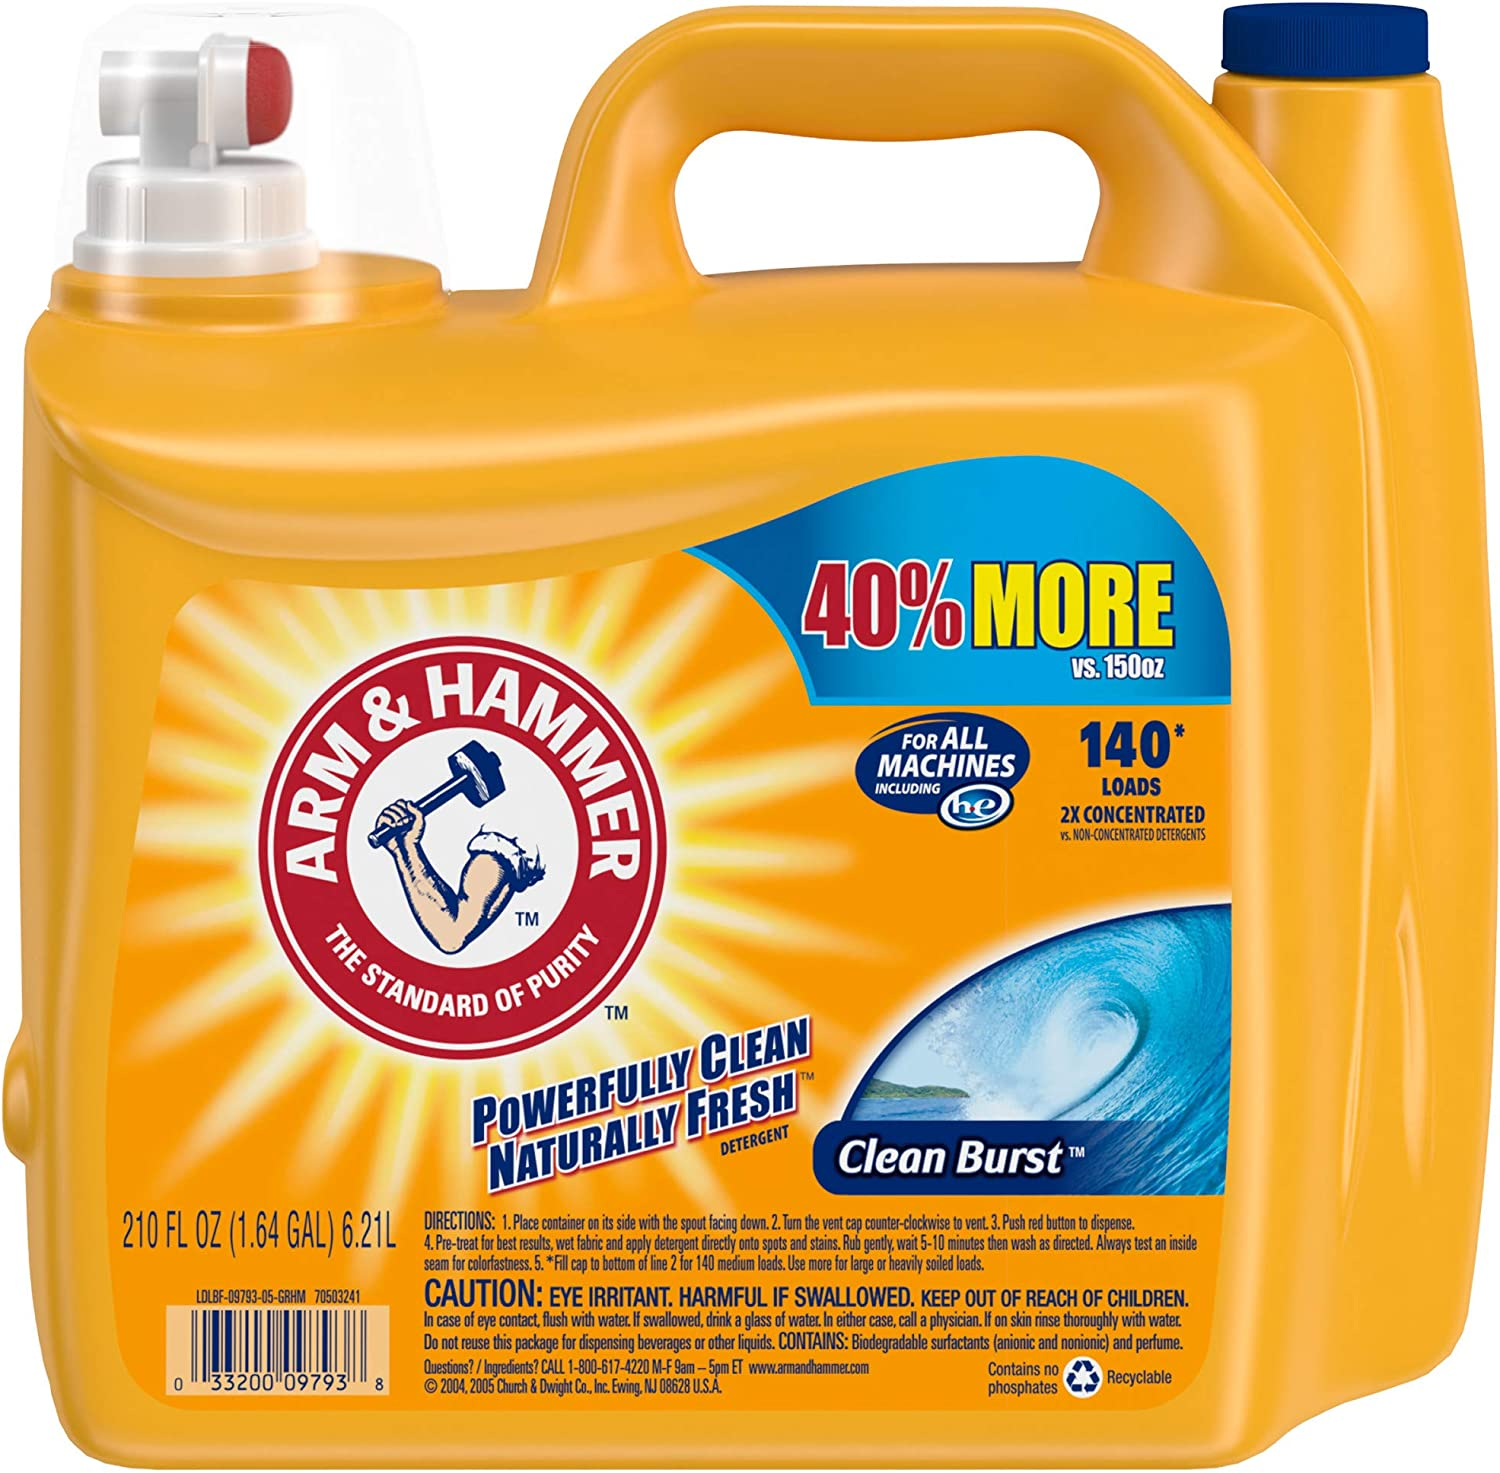 Arm & Hammer Clean Burst Liquid Laundry Detergent, 140 loads